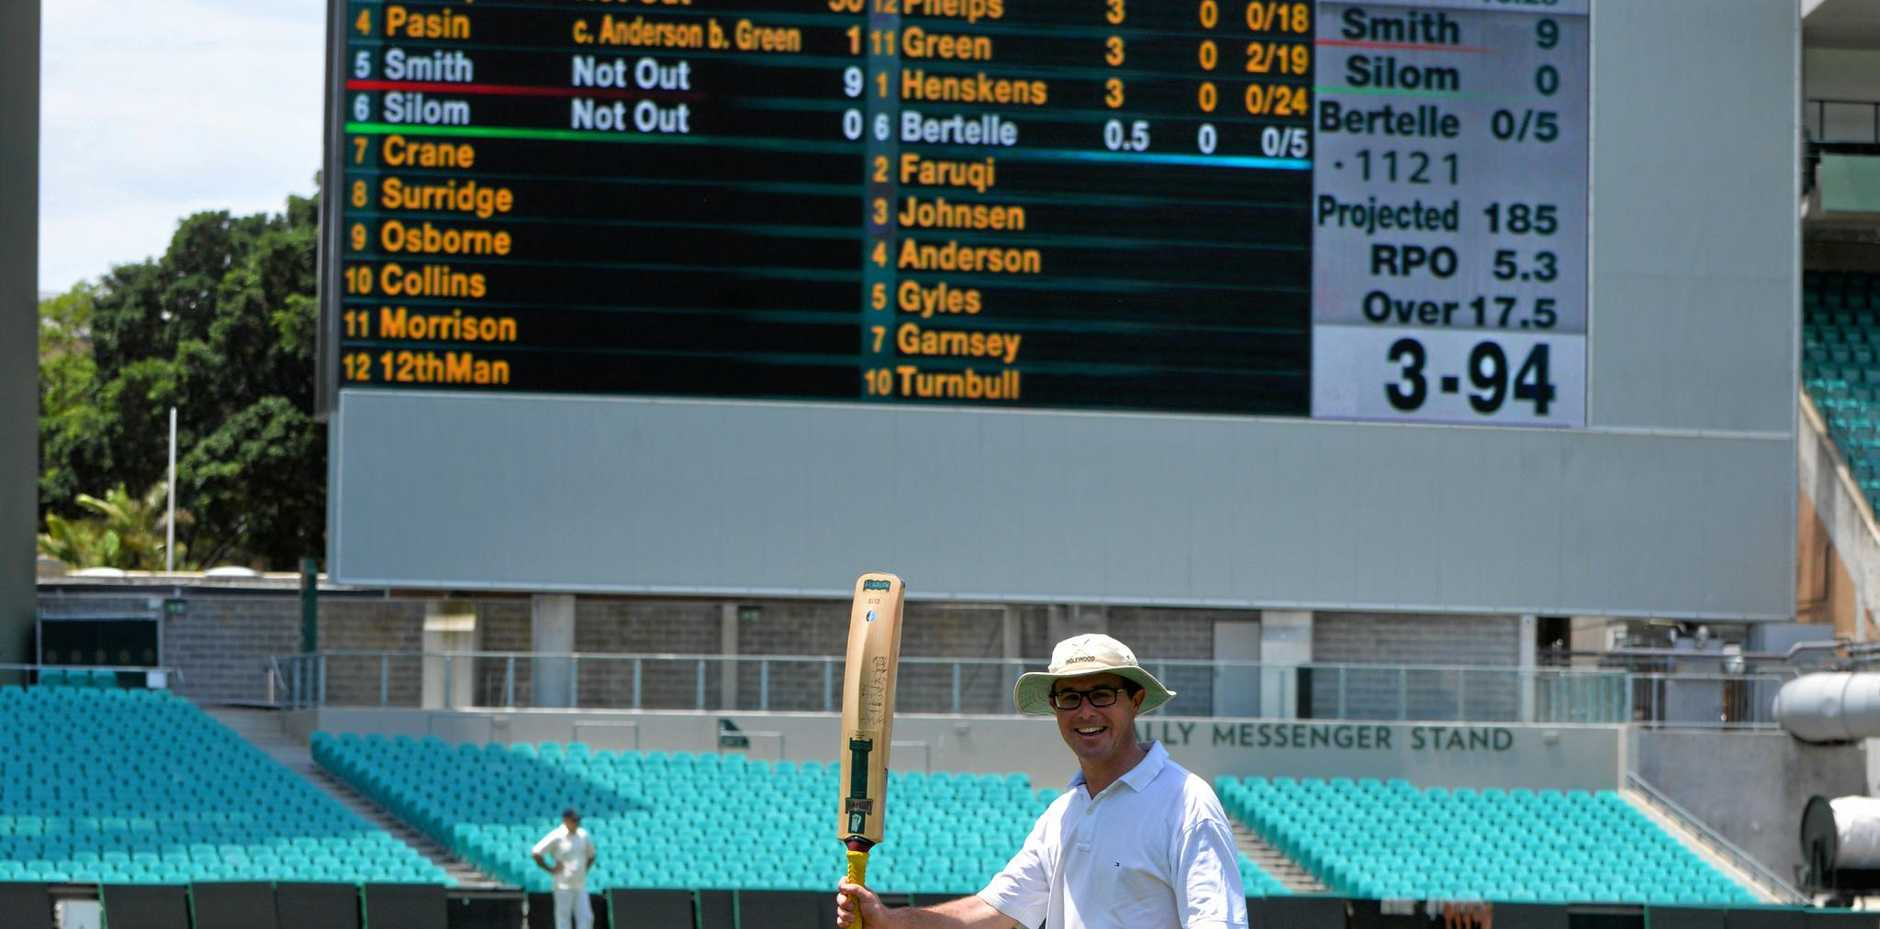 Member for Maranoa David Littleproud walks off the SCG with 50 not out on the scoreboard in a game between Federal and New South Wales Parliamentary teams.